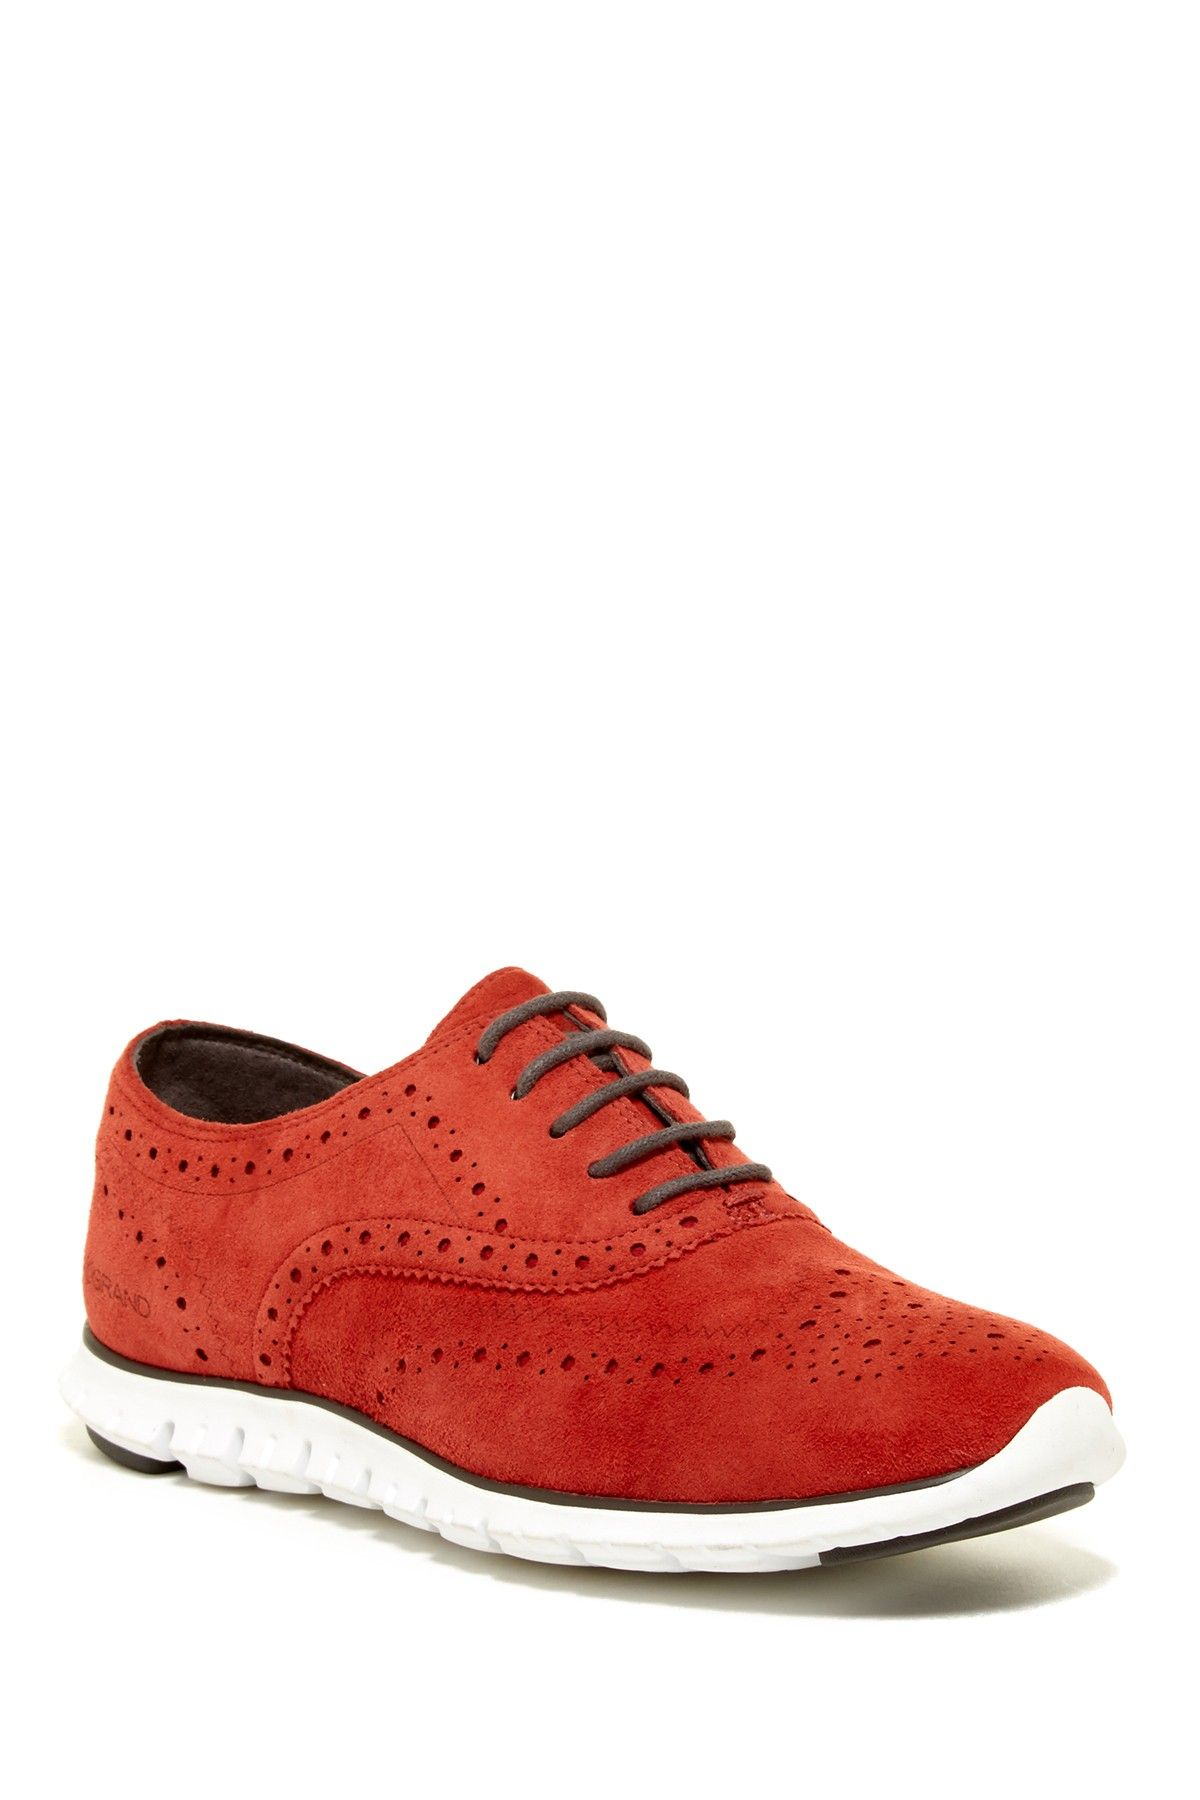 ZeroGrand Perforated Wingtip